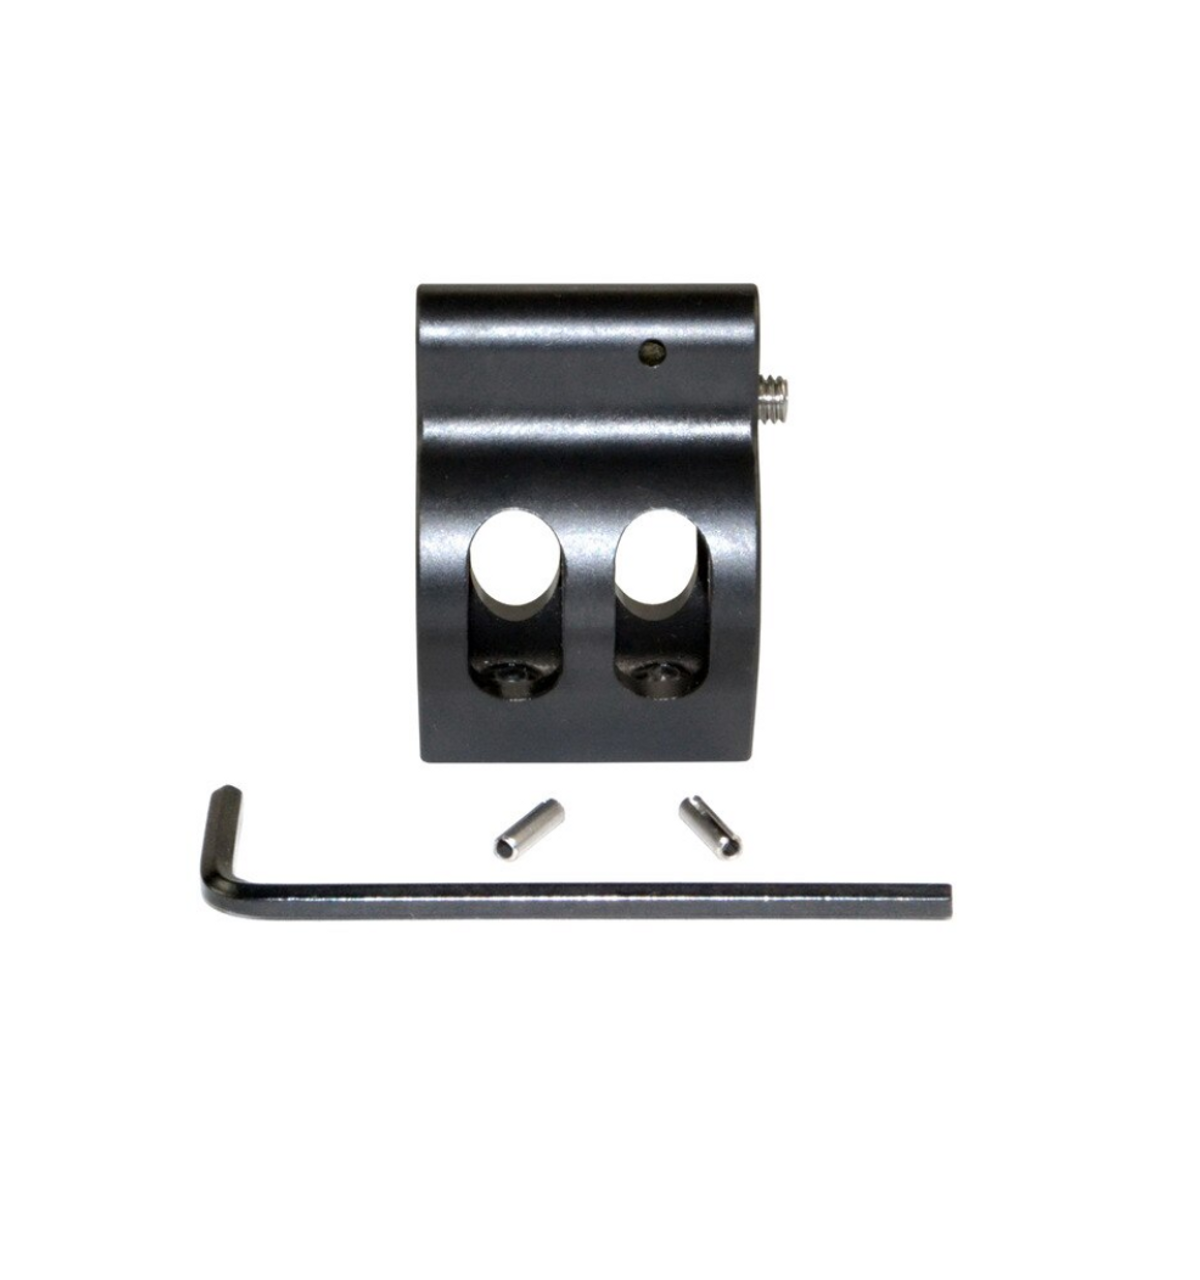 ".750"" Adjustable Low Profile Gas Block, Black Steel"